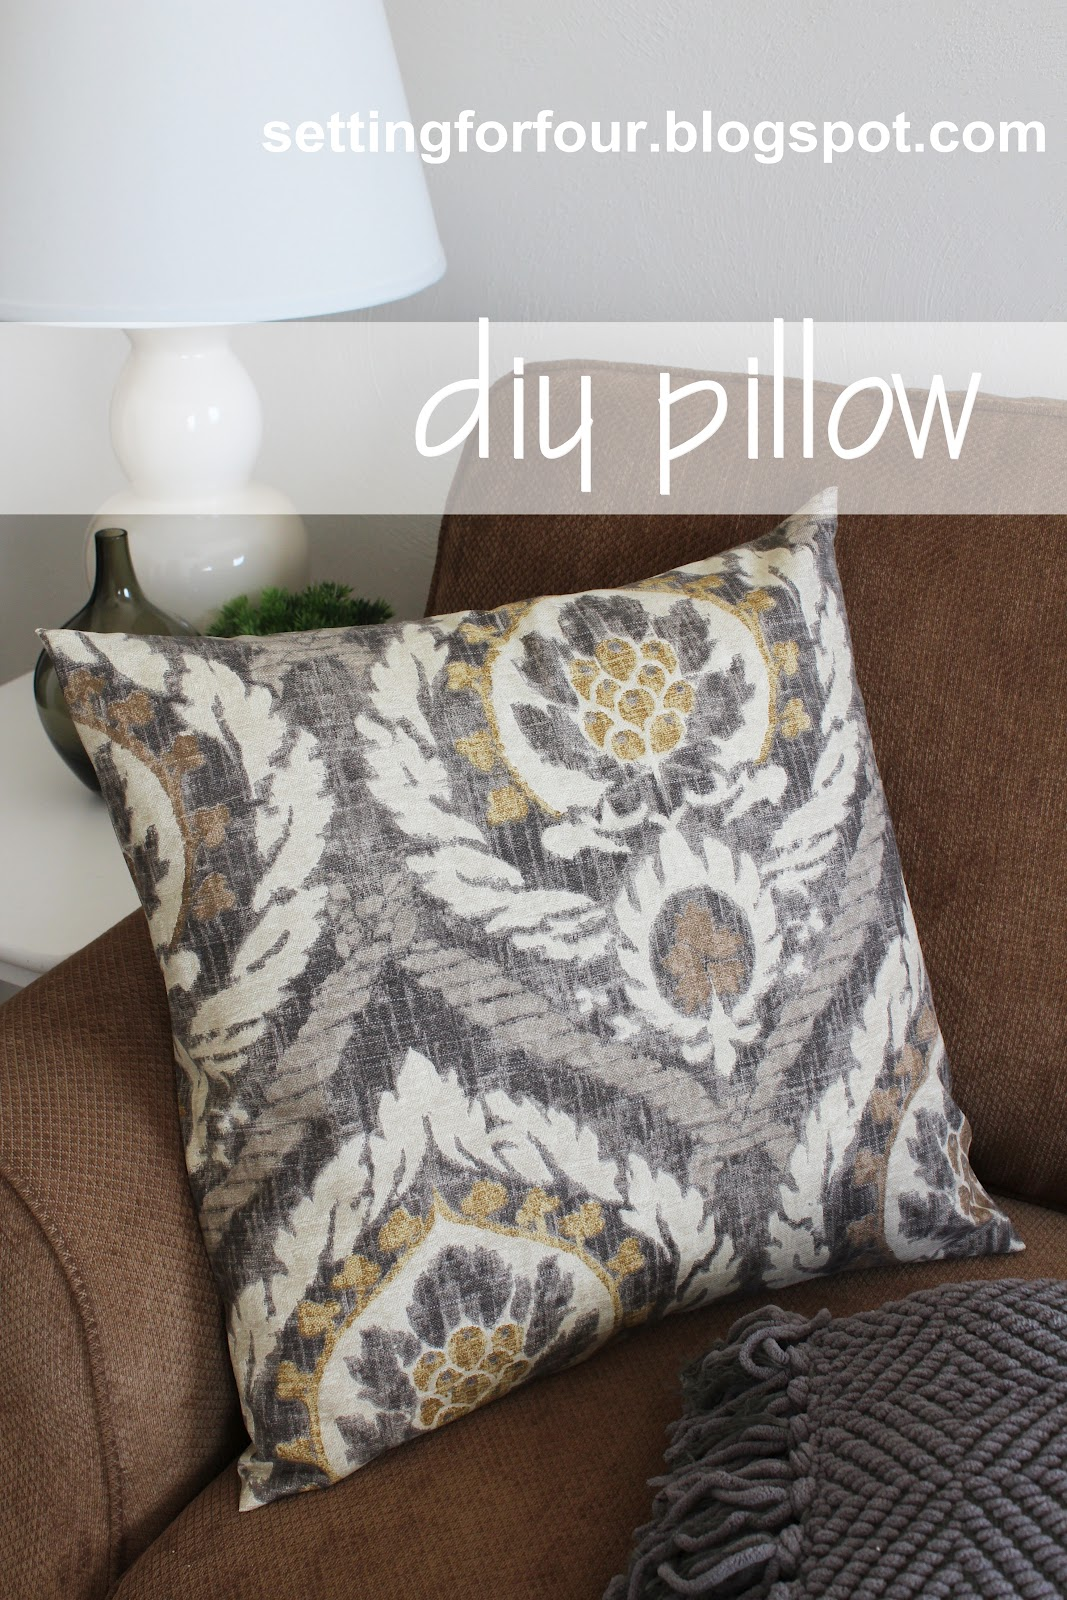 Ballard Design Pillows diy pillow cover 5 minutes to make! - setting for four